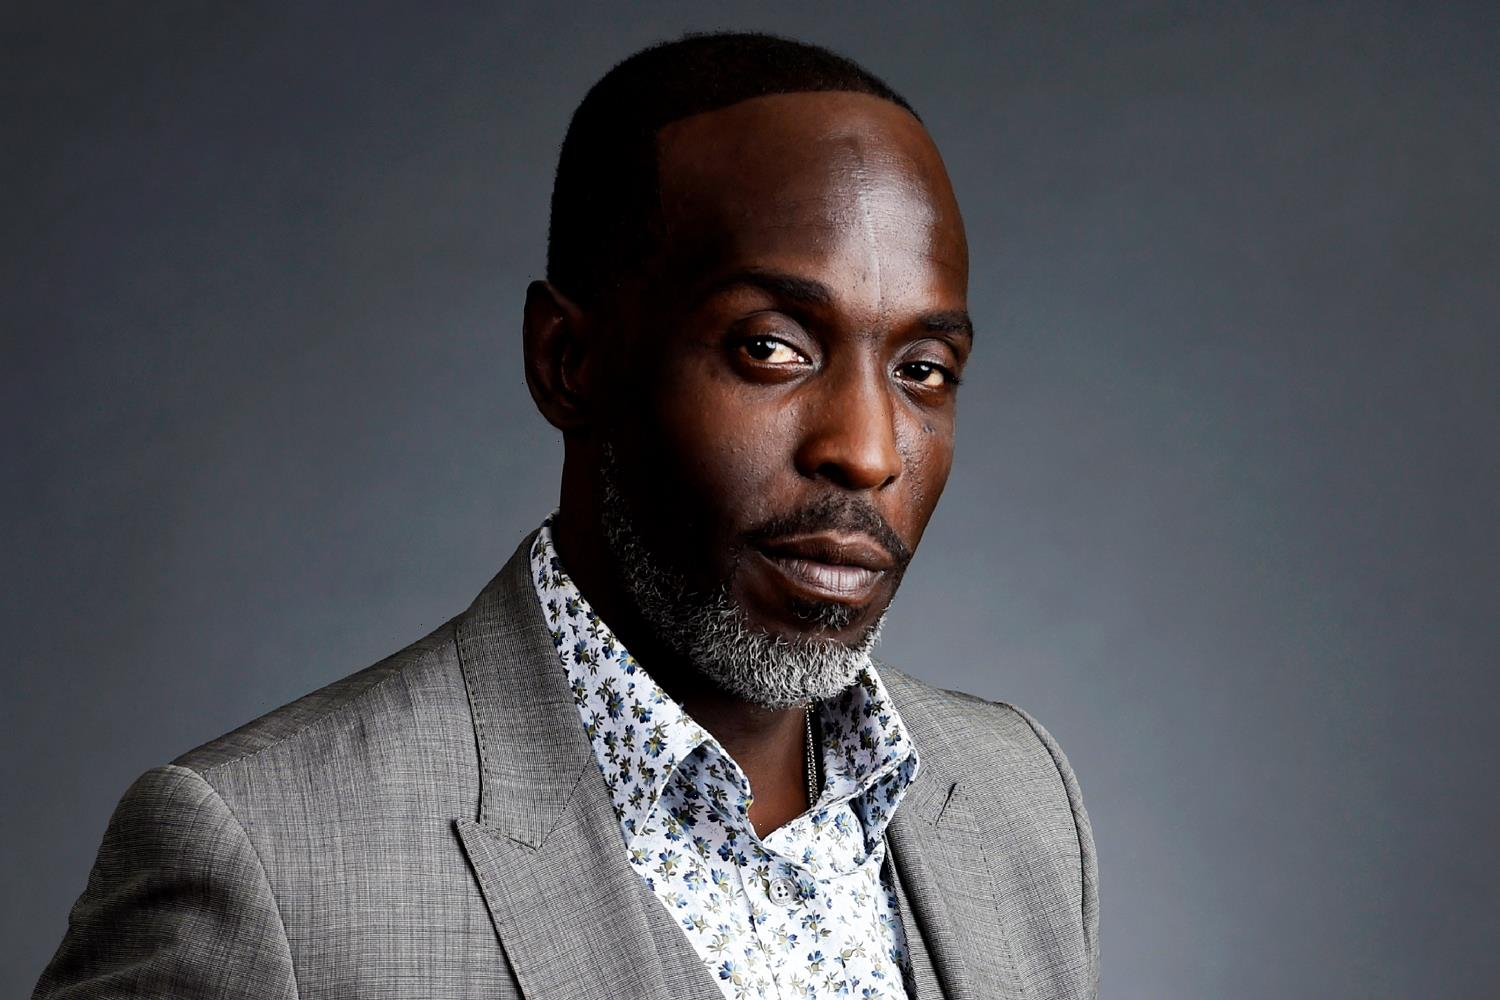 Michael K Williams once attempted suicide with a bottle of